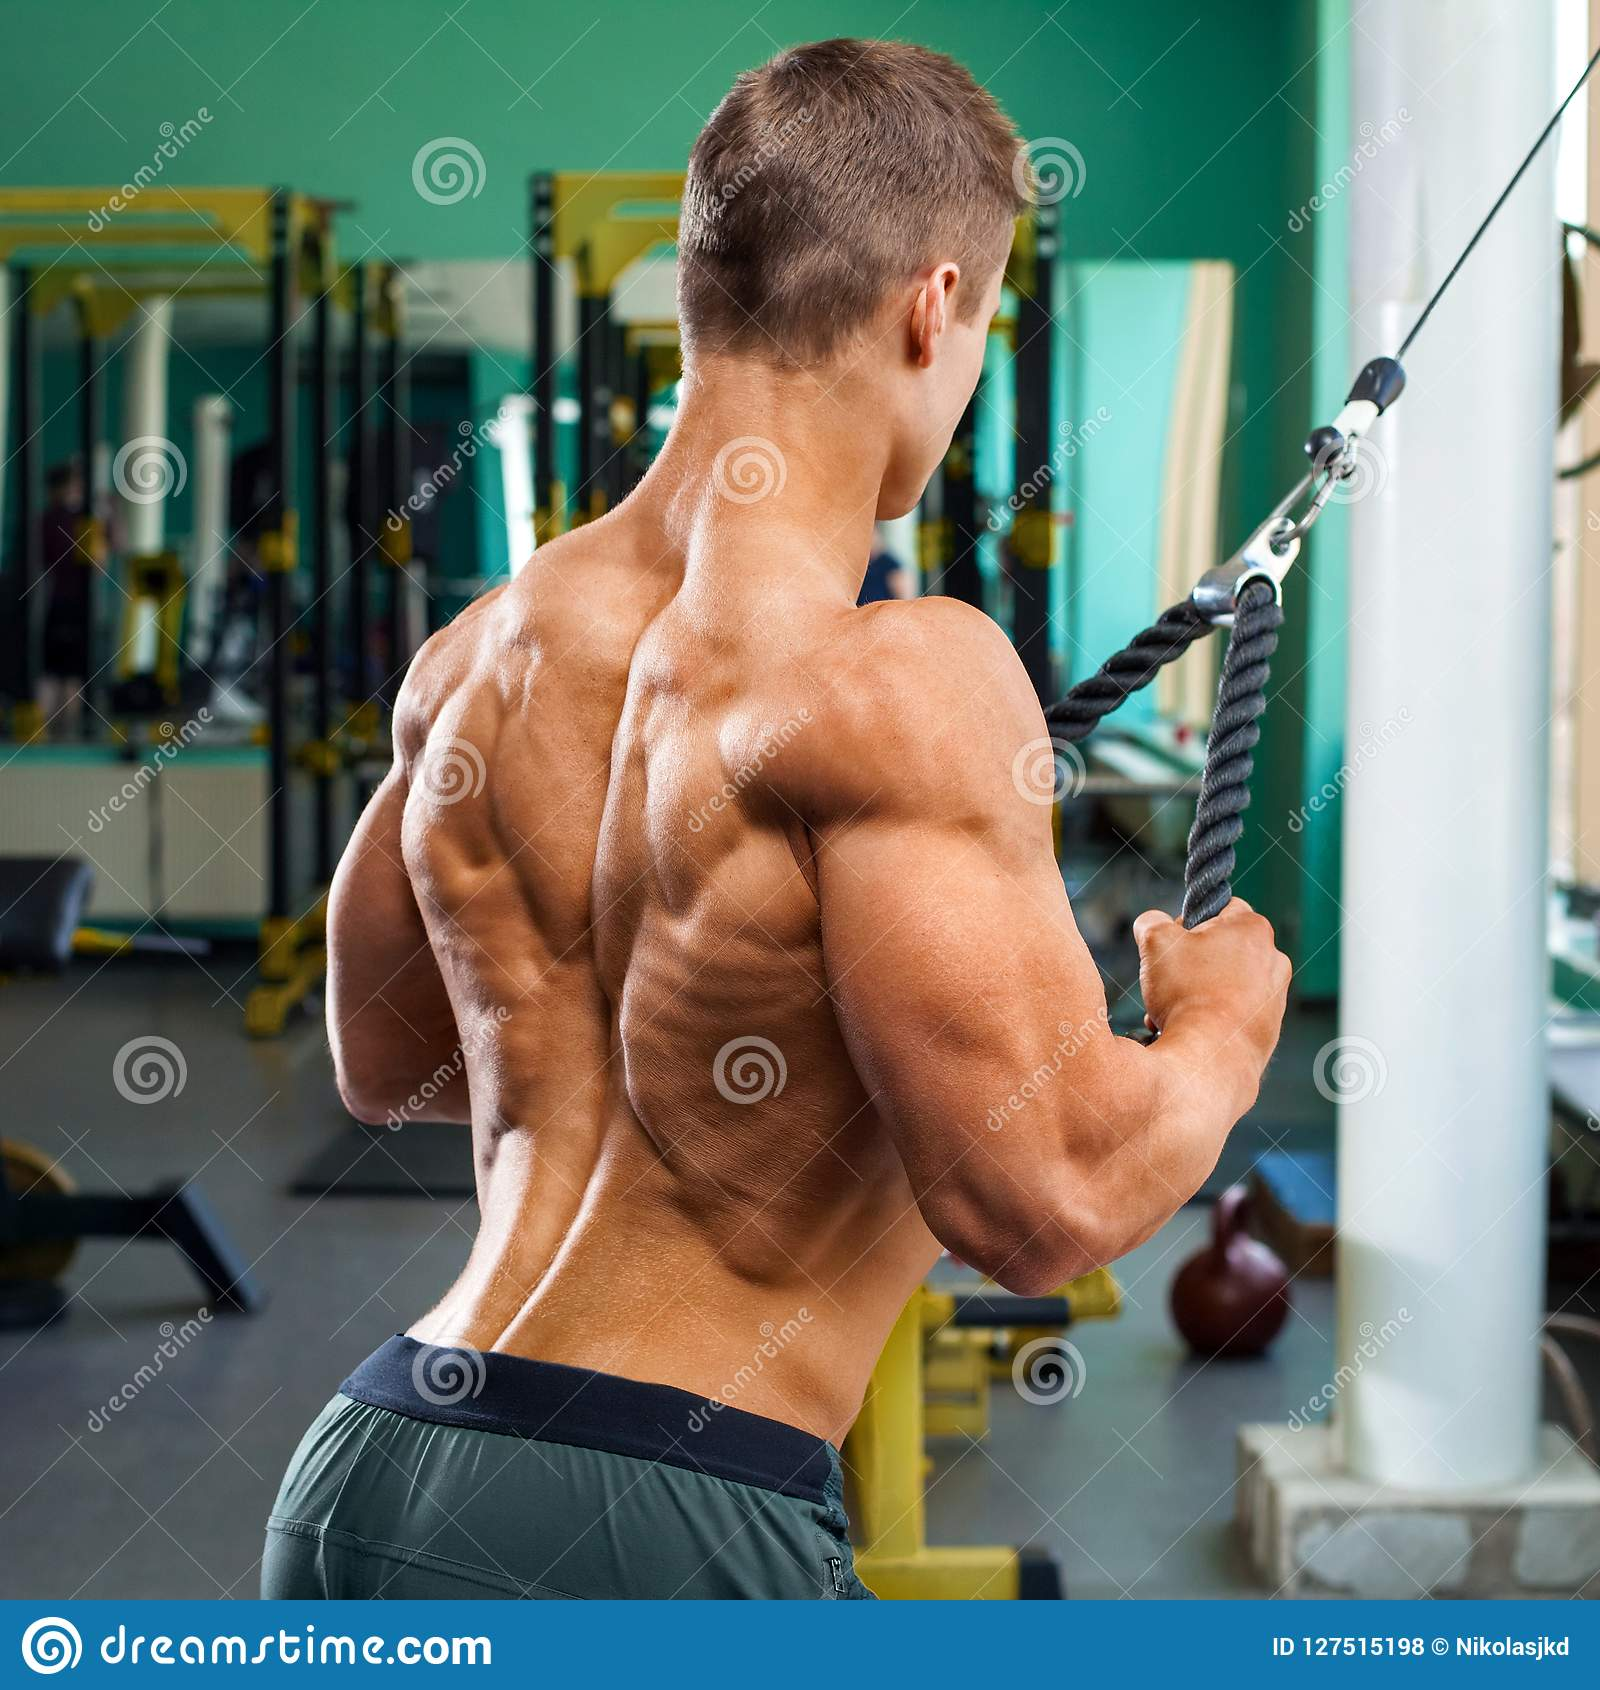 Muscular Back Bodybuilder Man Doing Pullover For Lats In Gym Strong Male Naked Torso Working Out Stock Photo Image Of Bodybuilding Naked 127515198